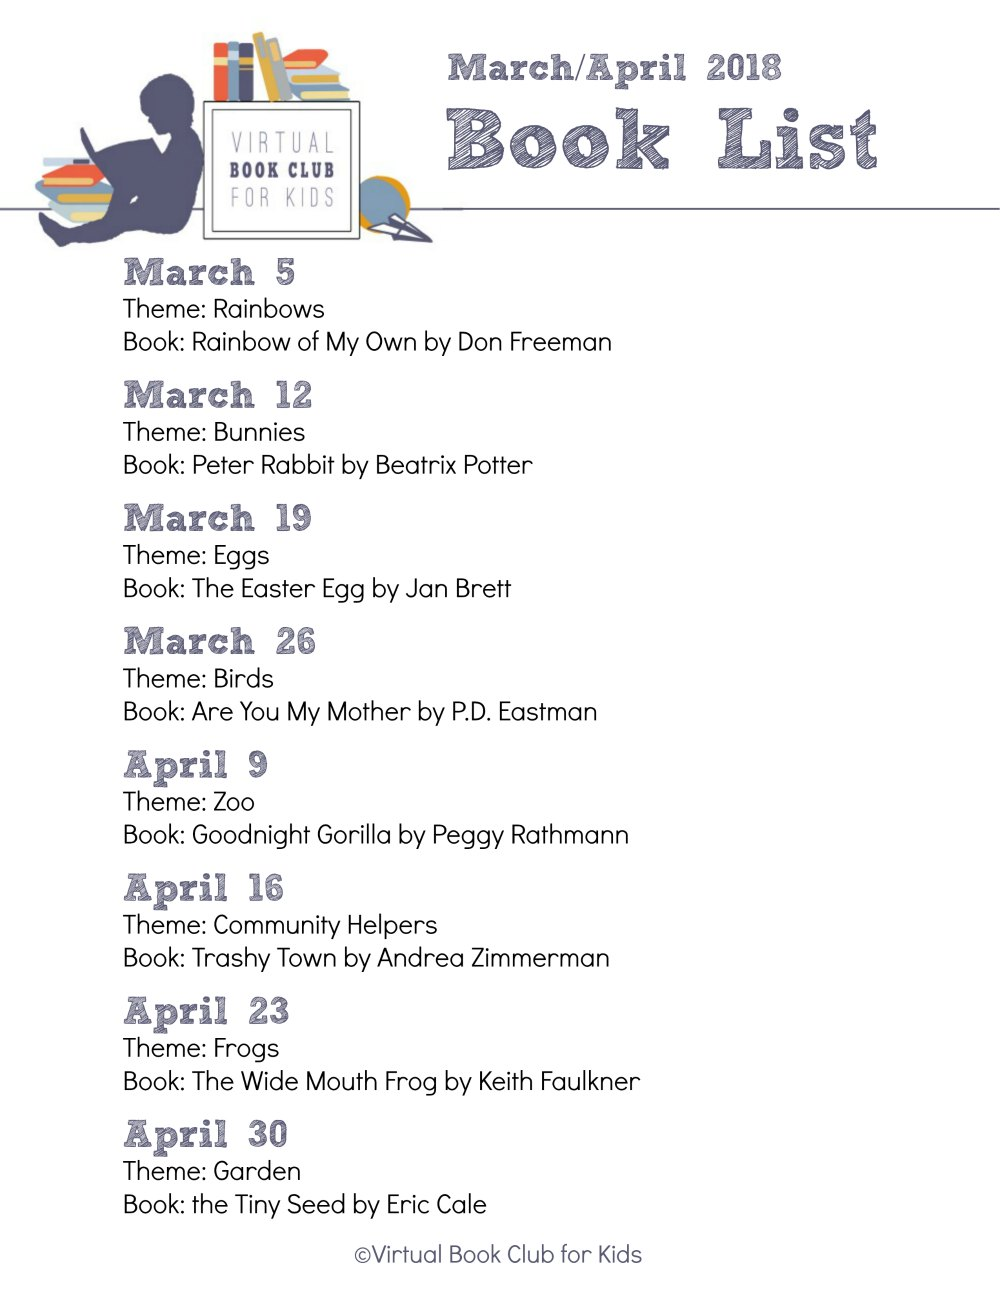 Weekly themes and Featured Books for The Virtual Book Club for Kids